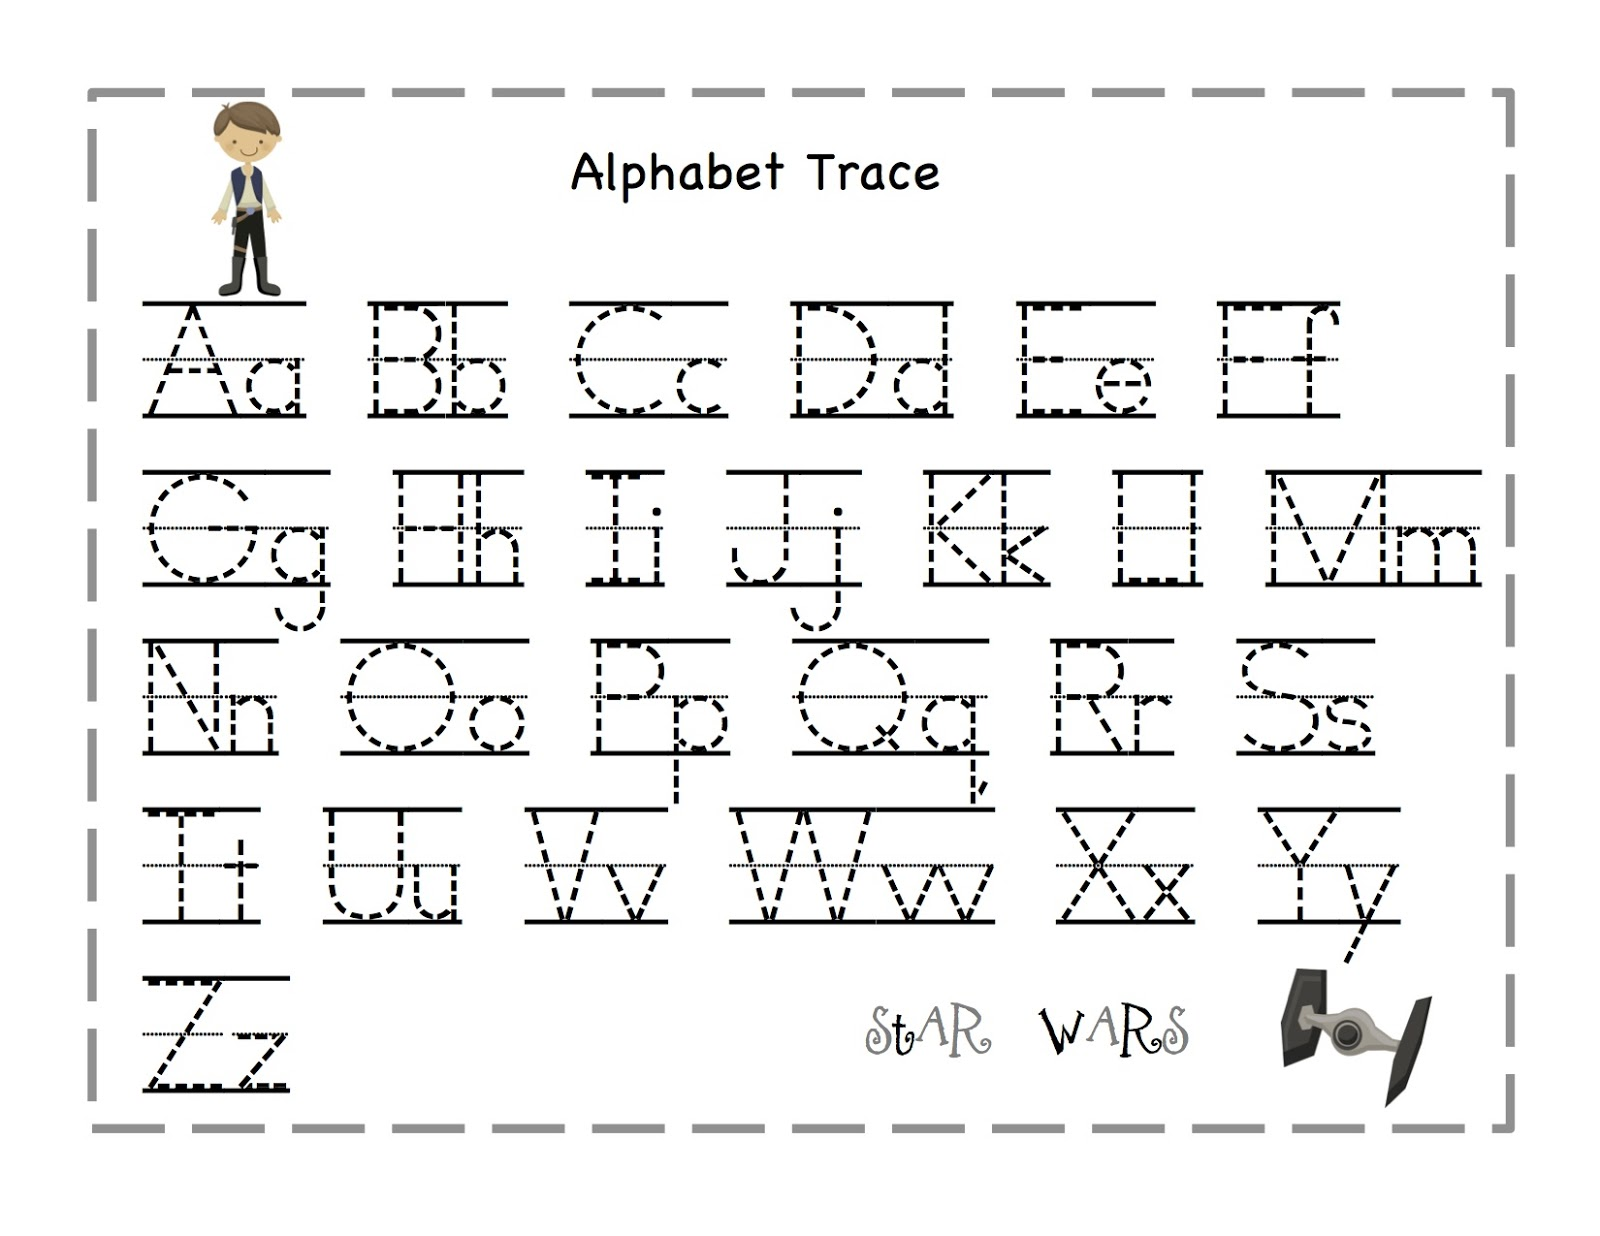 Printables Preschool Alphabet Worksheets A-z printables preschool alphabet worksheets a z safarmediapps free printable intrepidpath tracing letters coloring traceable let